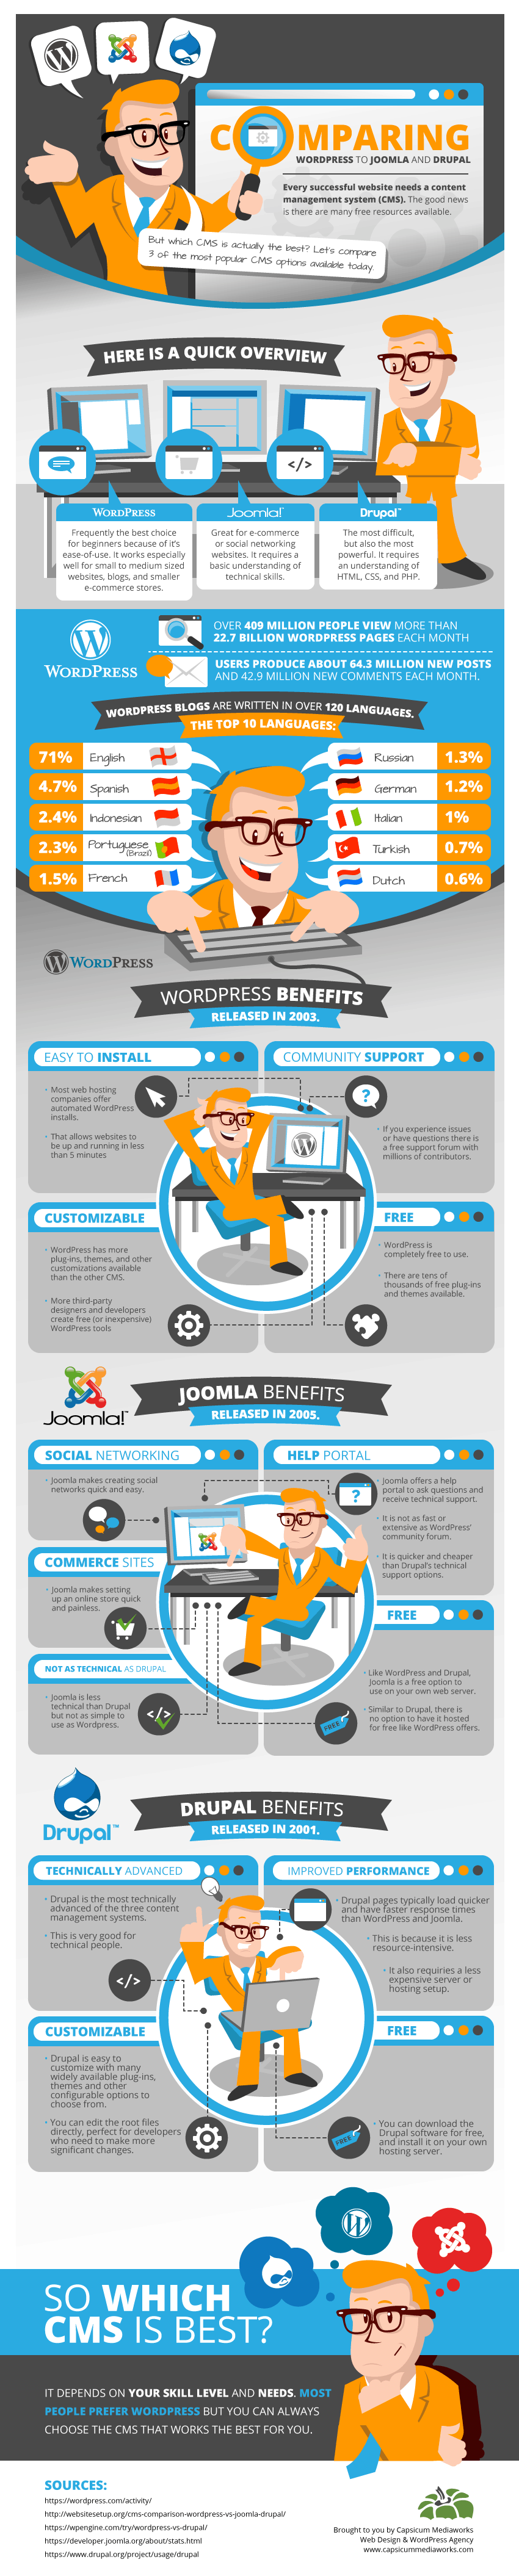 Wordpress-vs-Joomla-vs-Drupal-Infographic